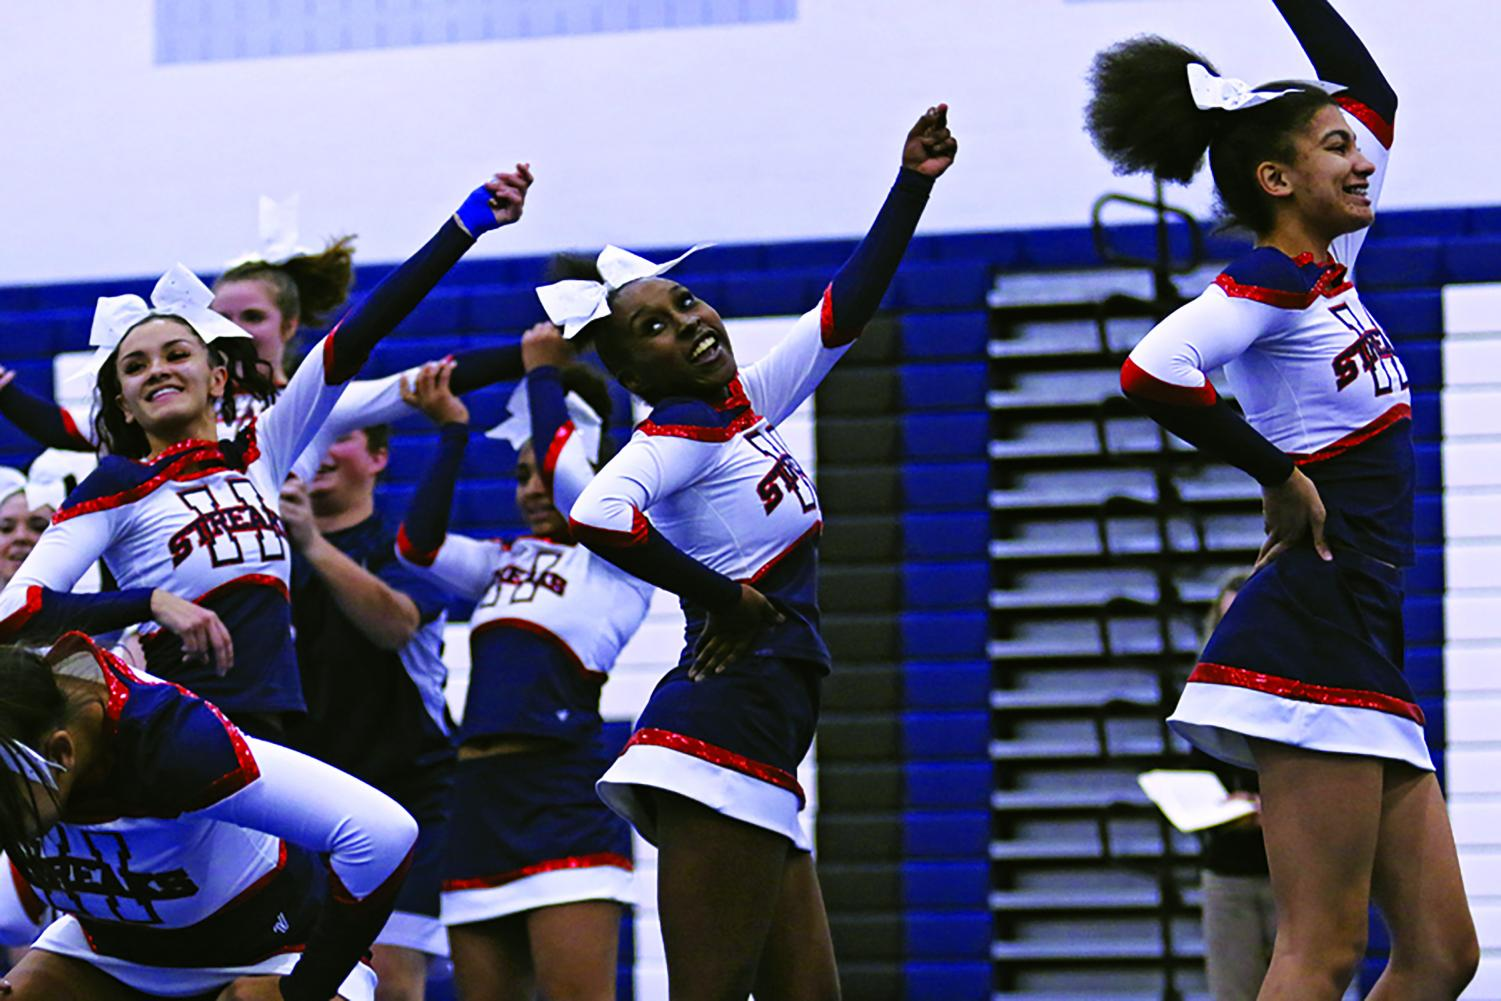 Junior Dorothy Yates competes in one of her many cheer competitions of this season. This year the cheer team placed second at districts.